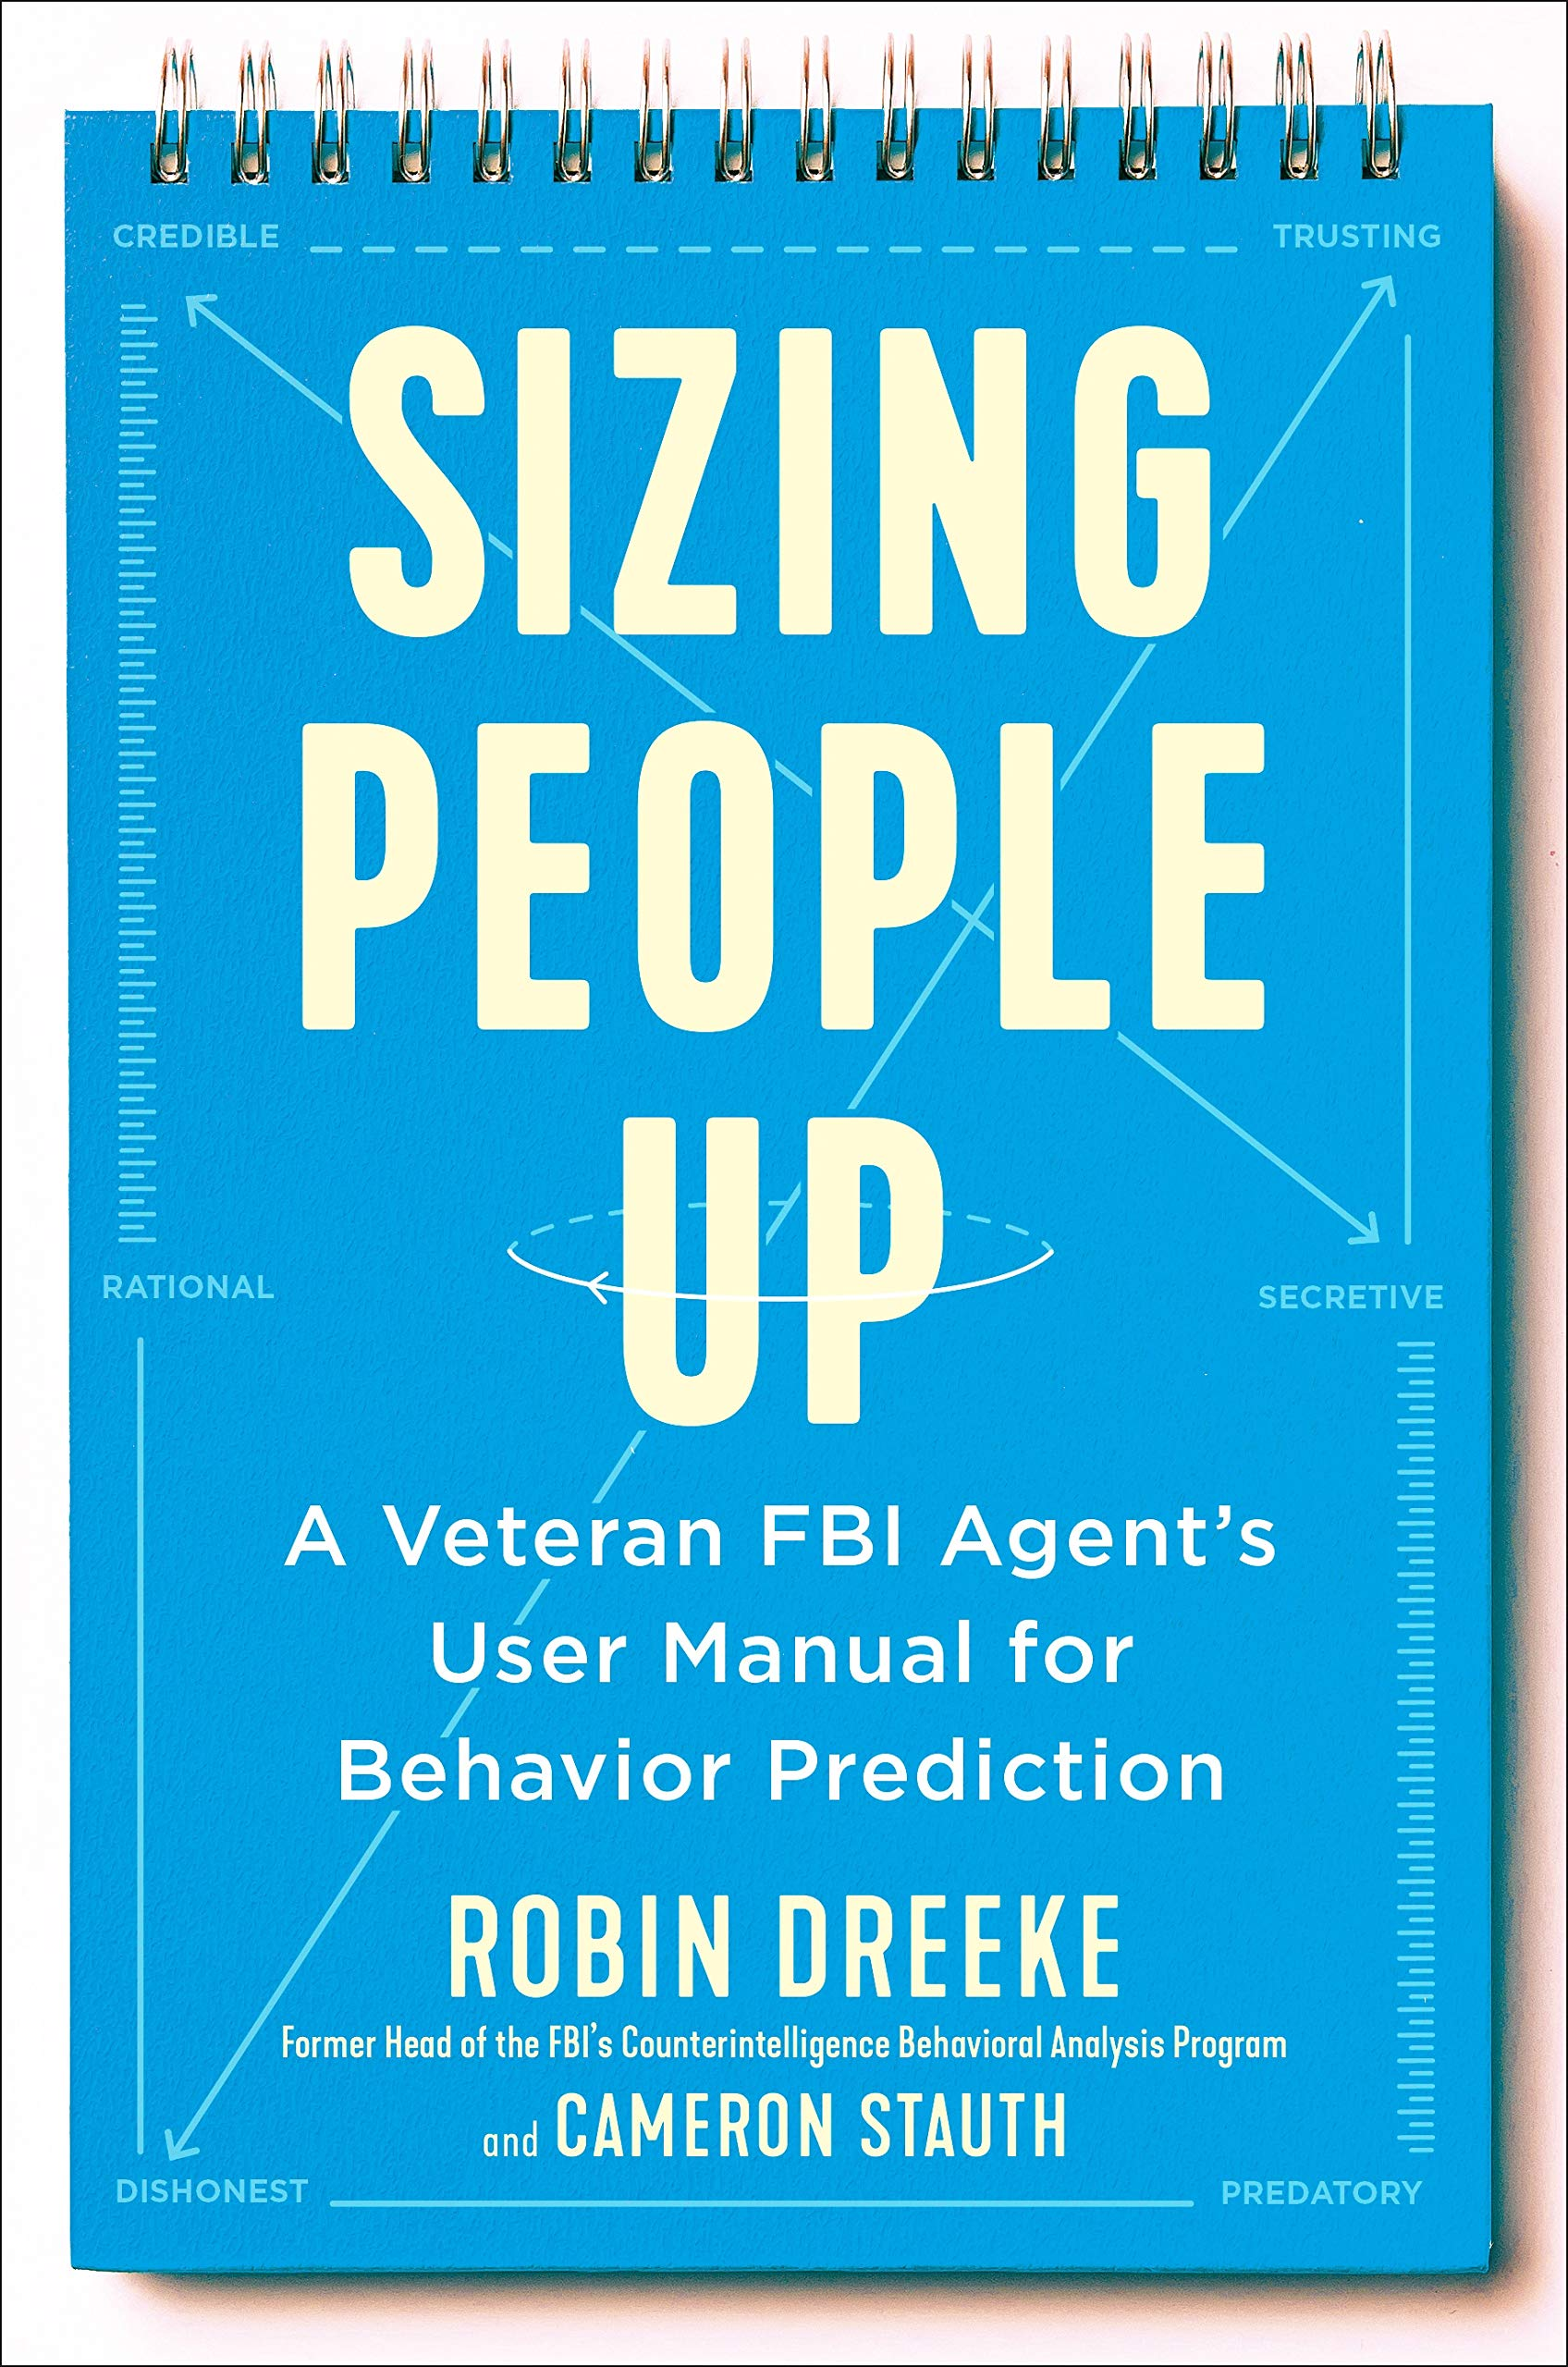 Sizing People Up by Robin Dreeke book cover.